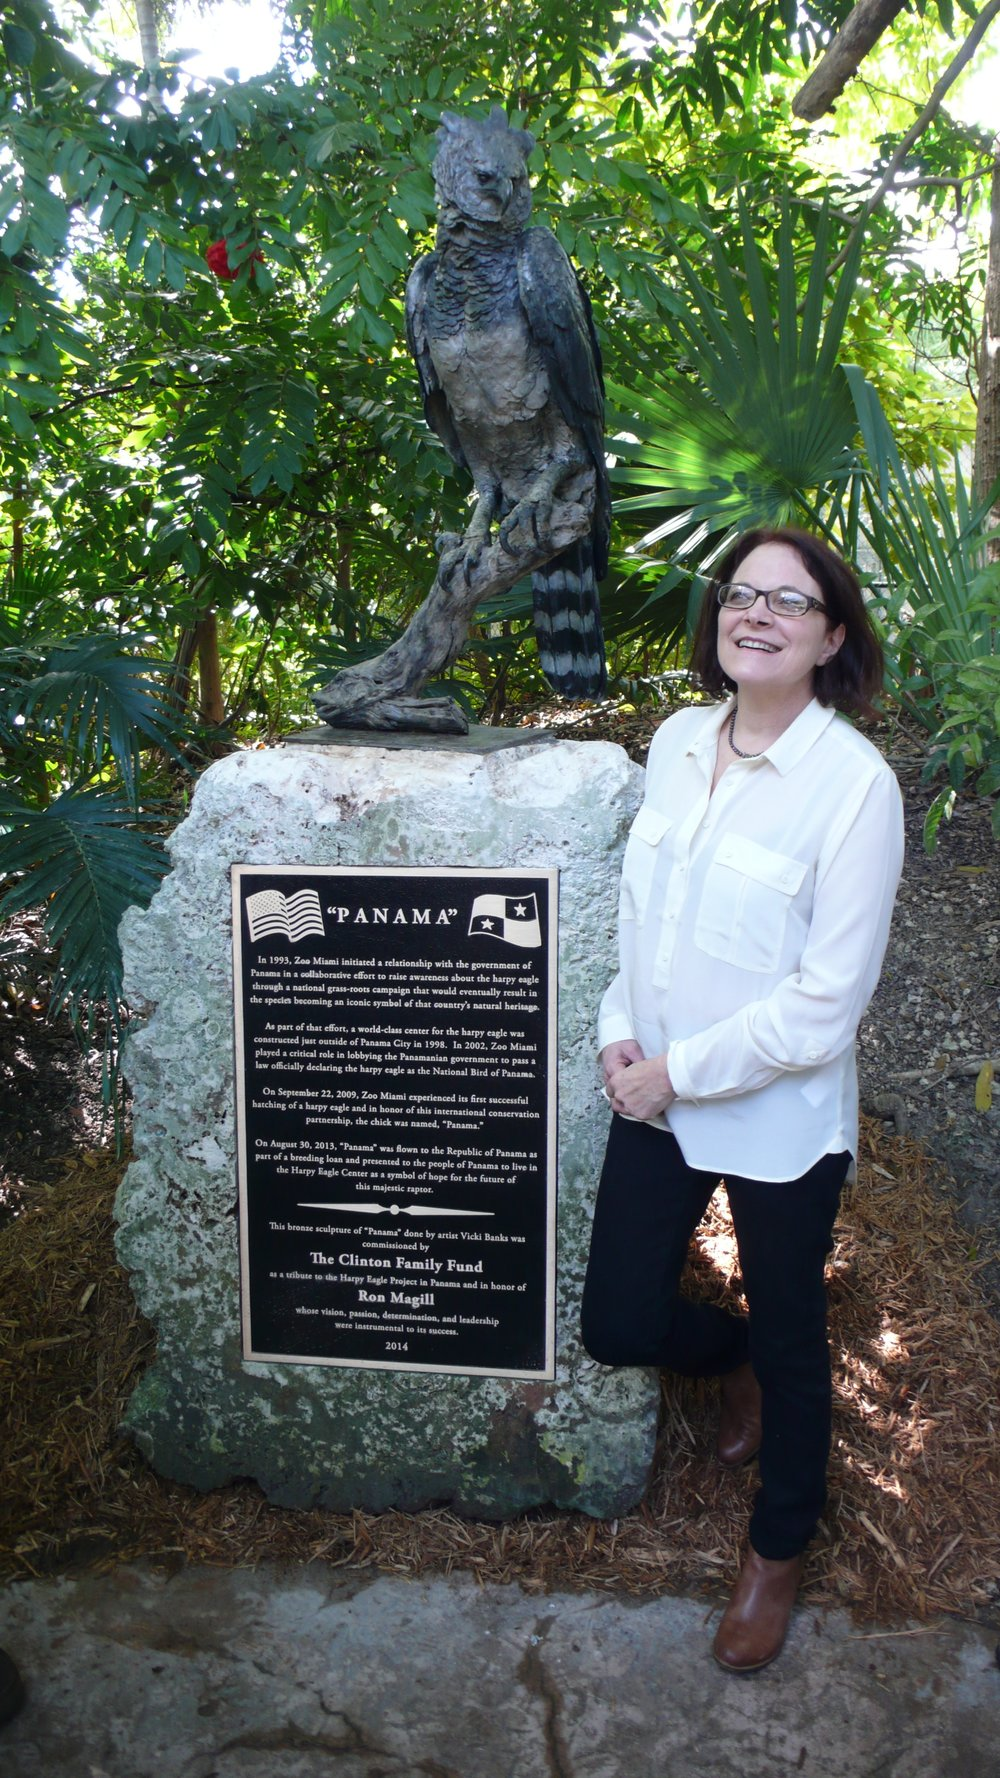 PANAMA - Vicki Banks was commissioned to sculpt a life-sized harpy eagle for installation at Zoo Miami in 2014. The sculpture is a tribute to the Zoo's involvement in the Harpy Eagle Project in Panama, as well as to conservationist Ron Magill who championed the effort.Plaque Text: